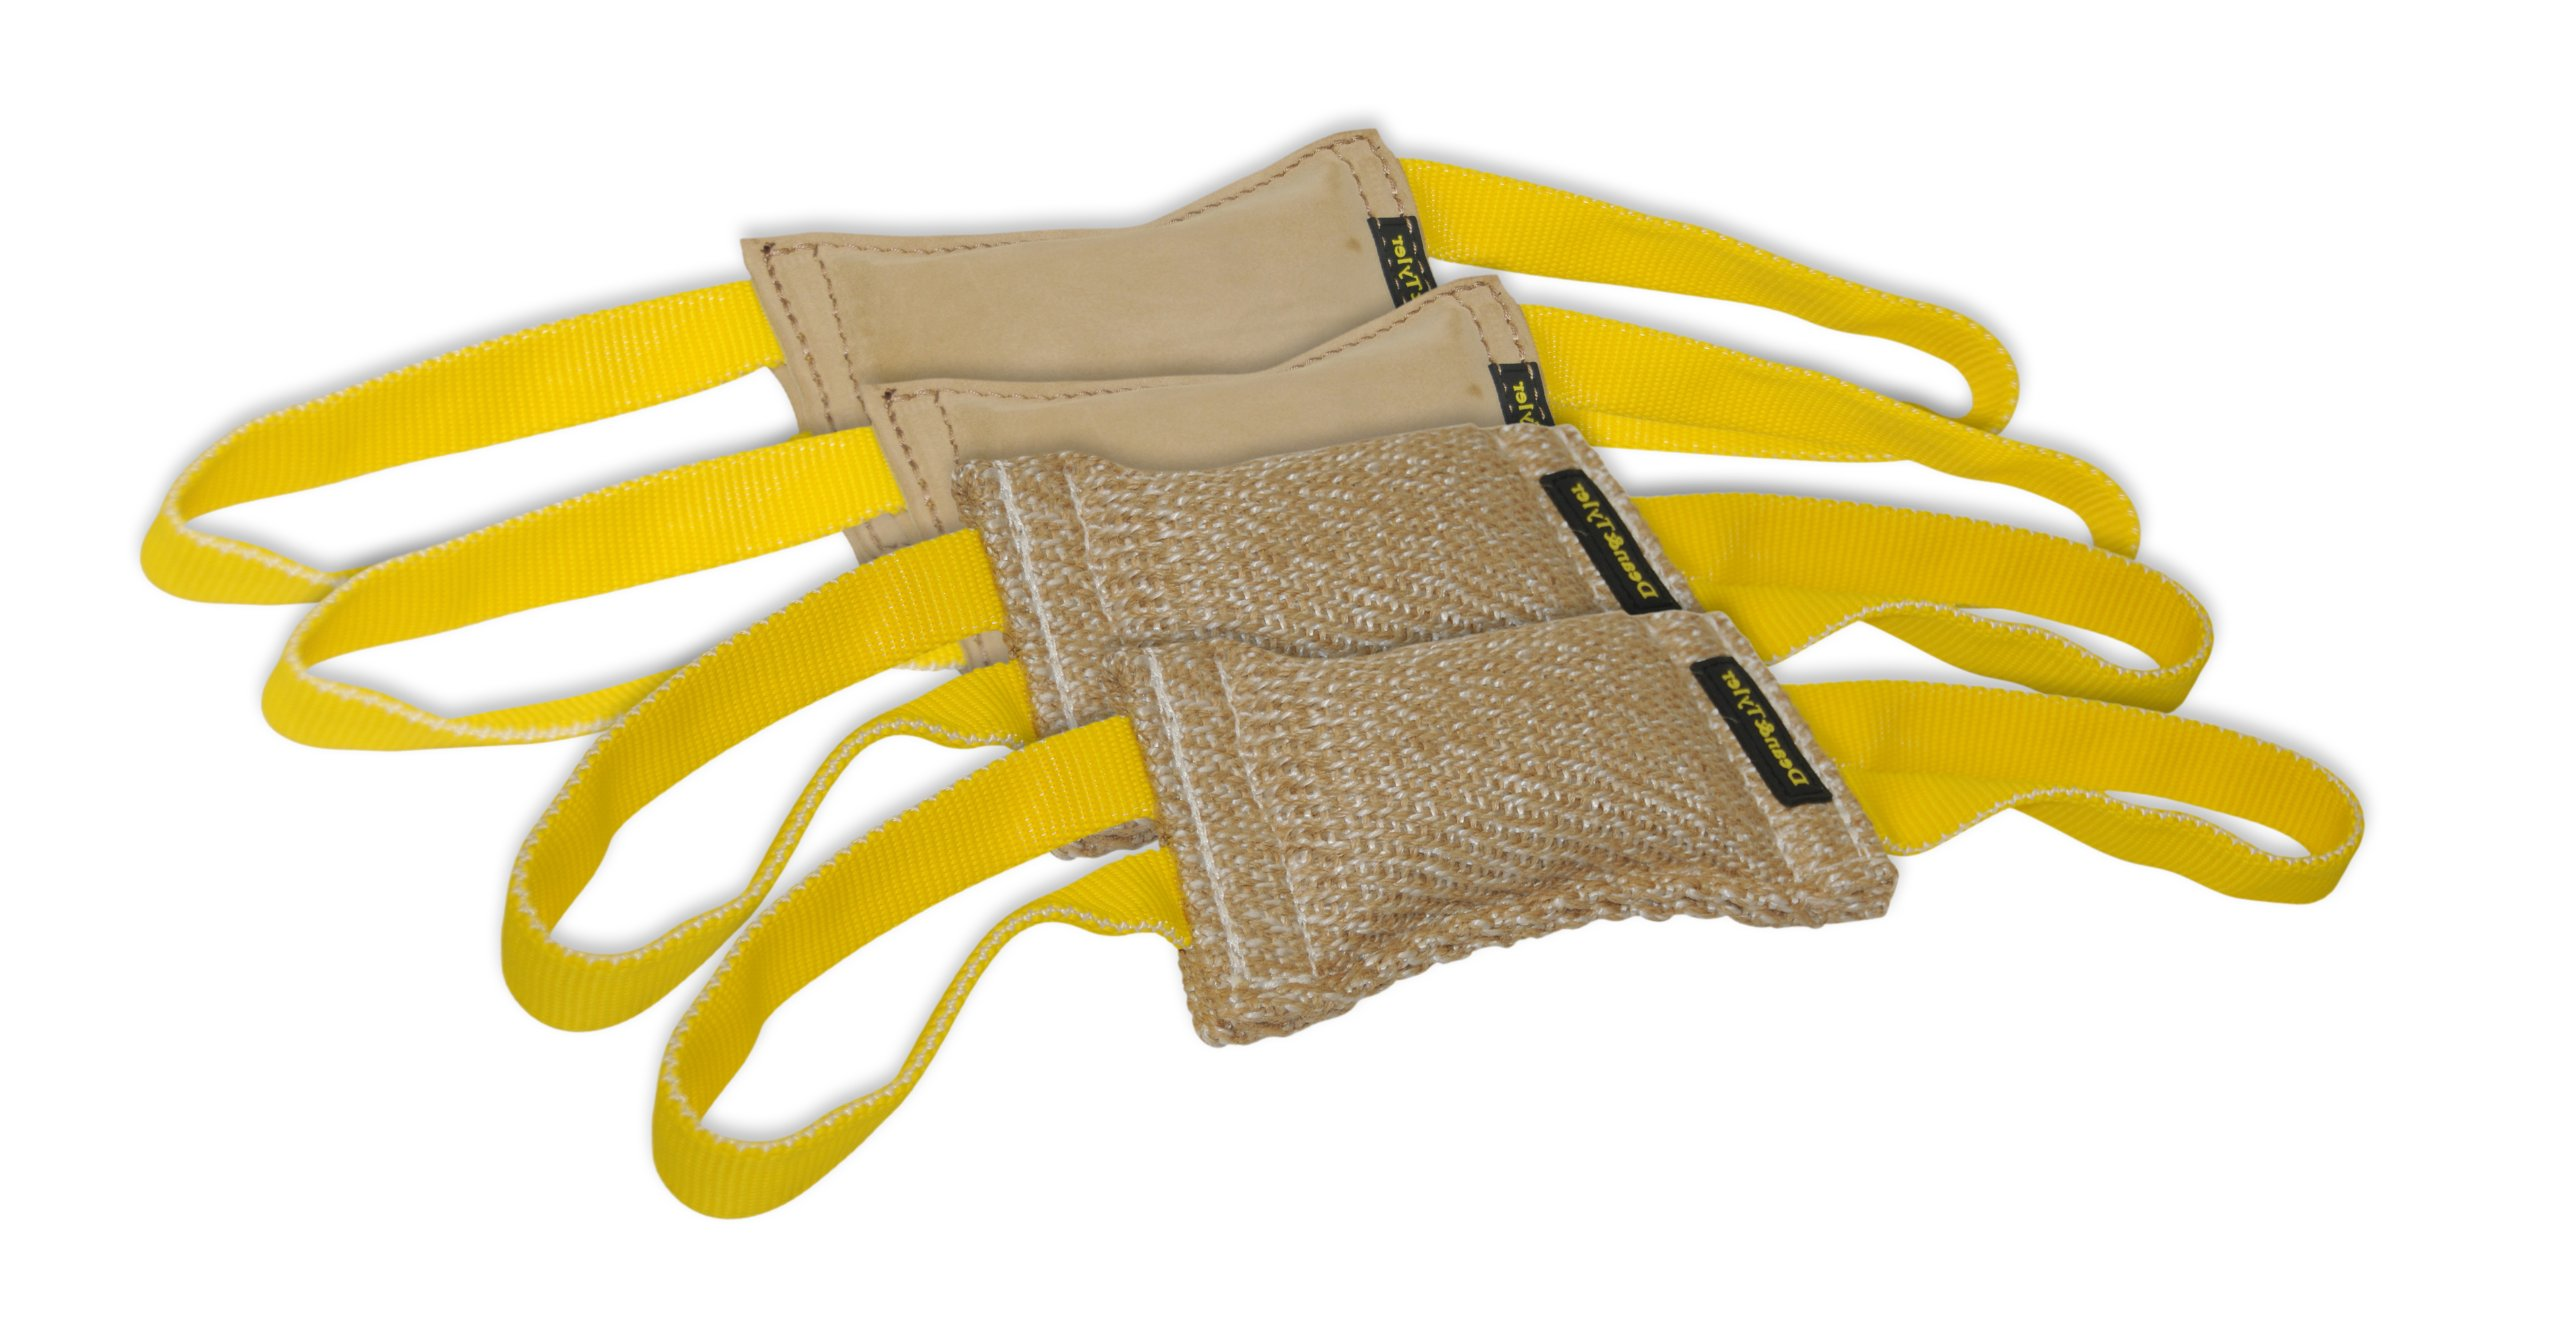 Dean & Tyler Bundle of 4 Tugs for Pets, 2-Jute and 2-Leather, 8-Inch by 4-Inch